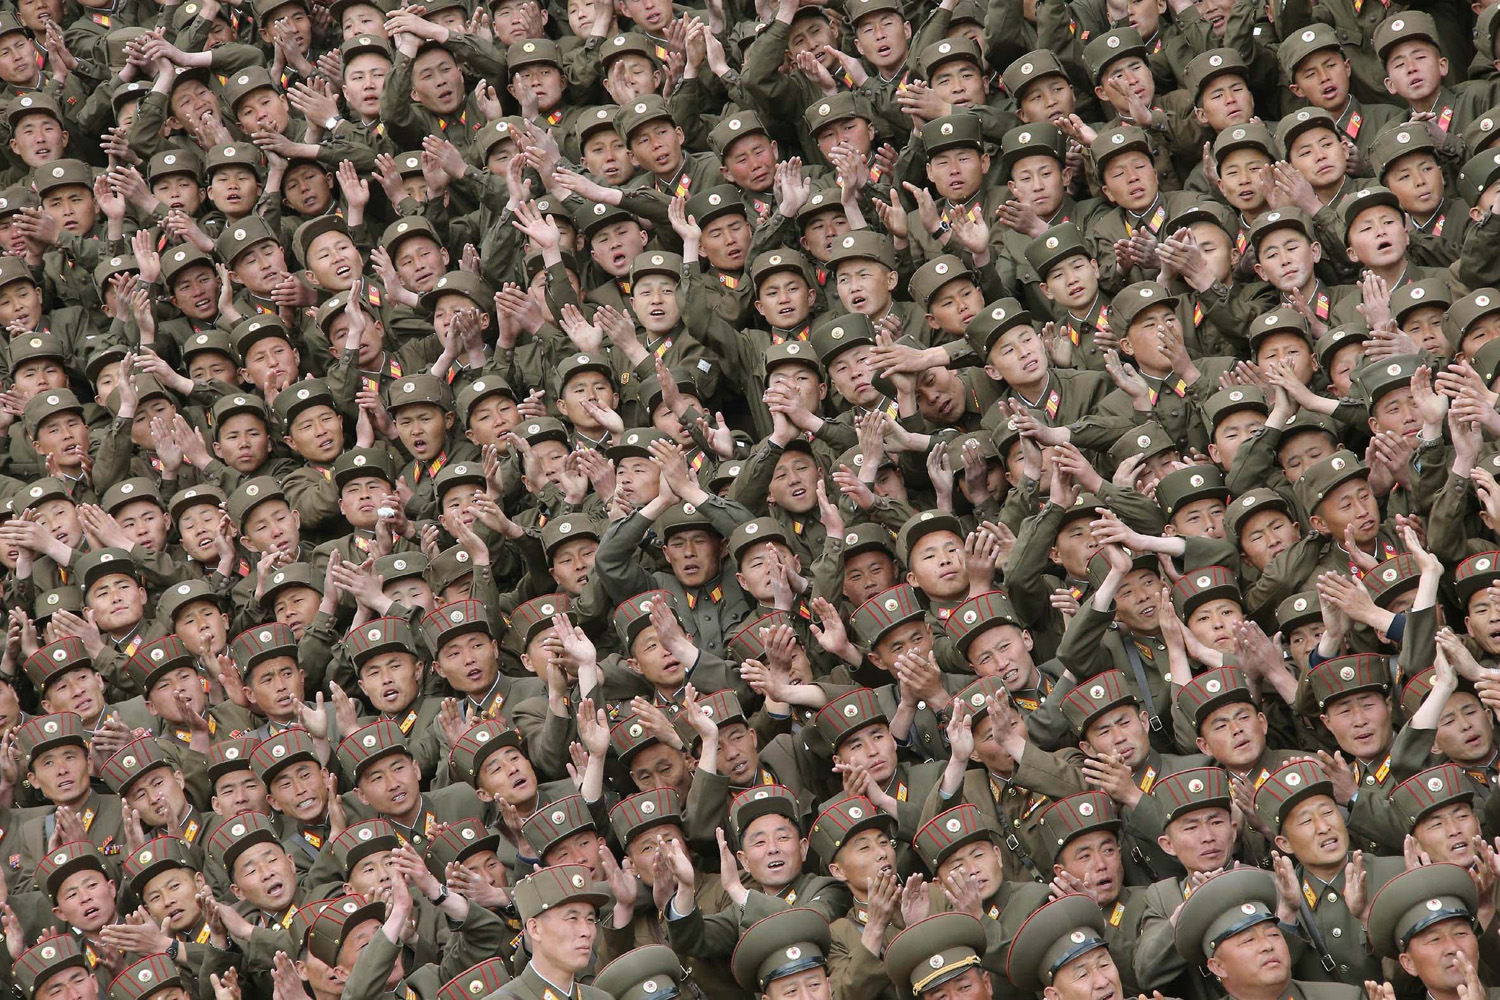 May 6, 2014. Soldier-builders of KPA Units 966, 462, 101, 489, who took part in building the workers' hostel of Kim Jong Suk Pyongyang Textile Mill, applaud during a photo session with North Korean leader Kim Jong Un.